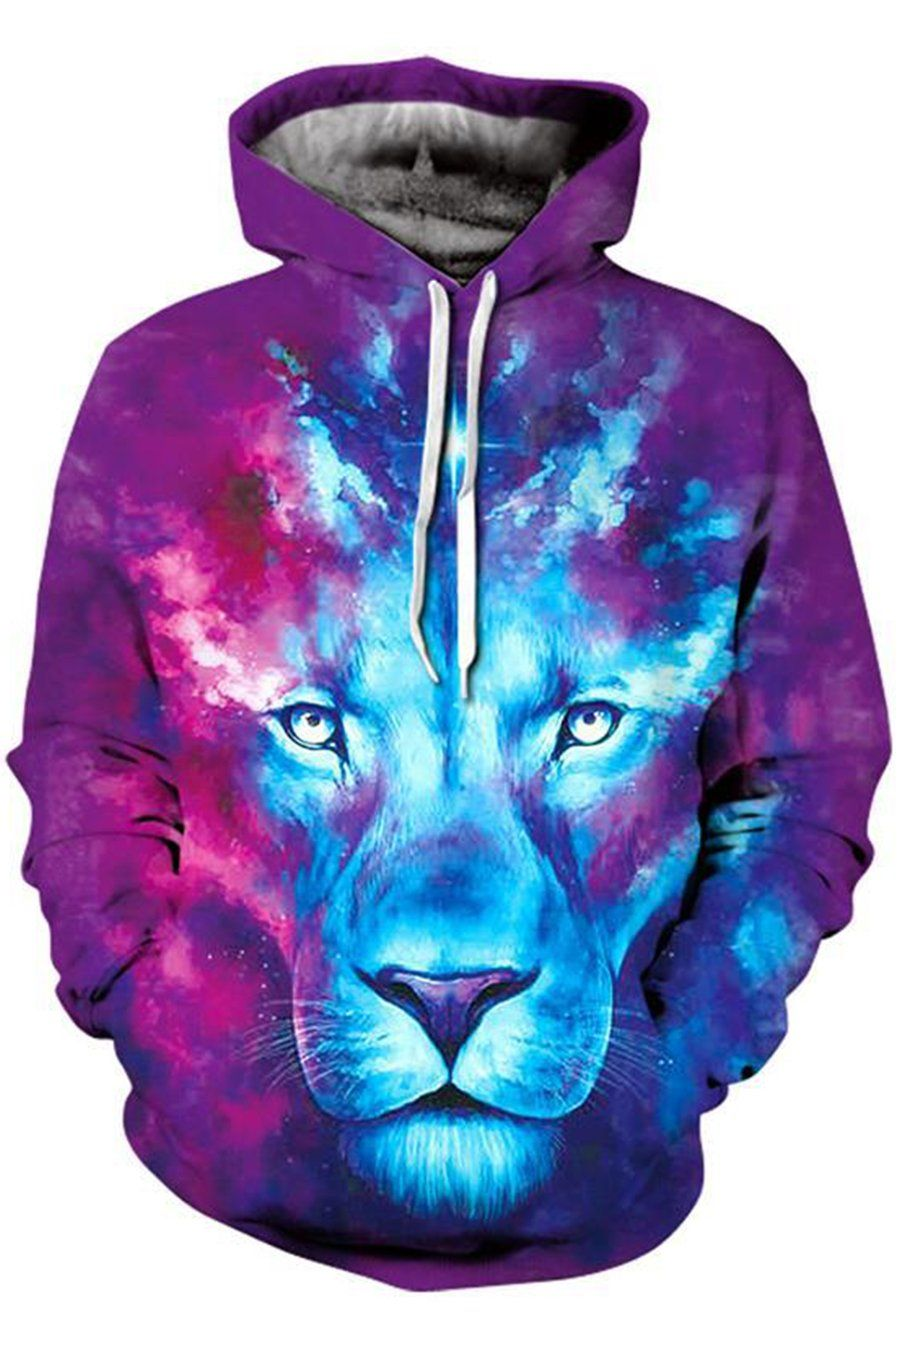 Original 2018 New 3d Mens Hoodies Print Orangutan Monkey Sweatshirts Harajuku Loose Hoodie Male Pullovers Tops Cool Streetwear Hooded Men's Clothing